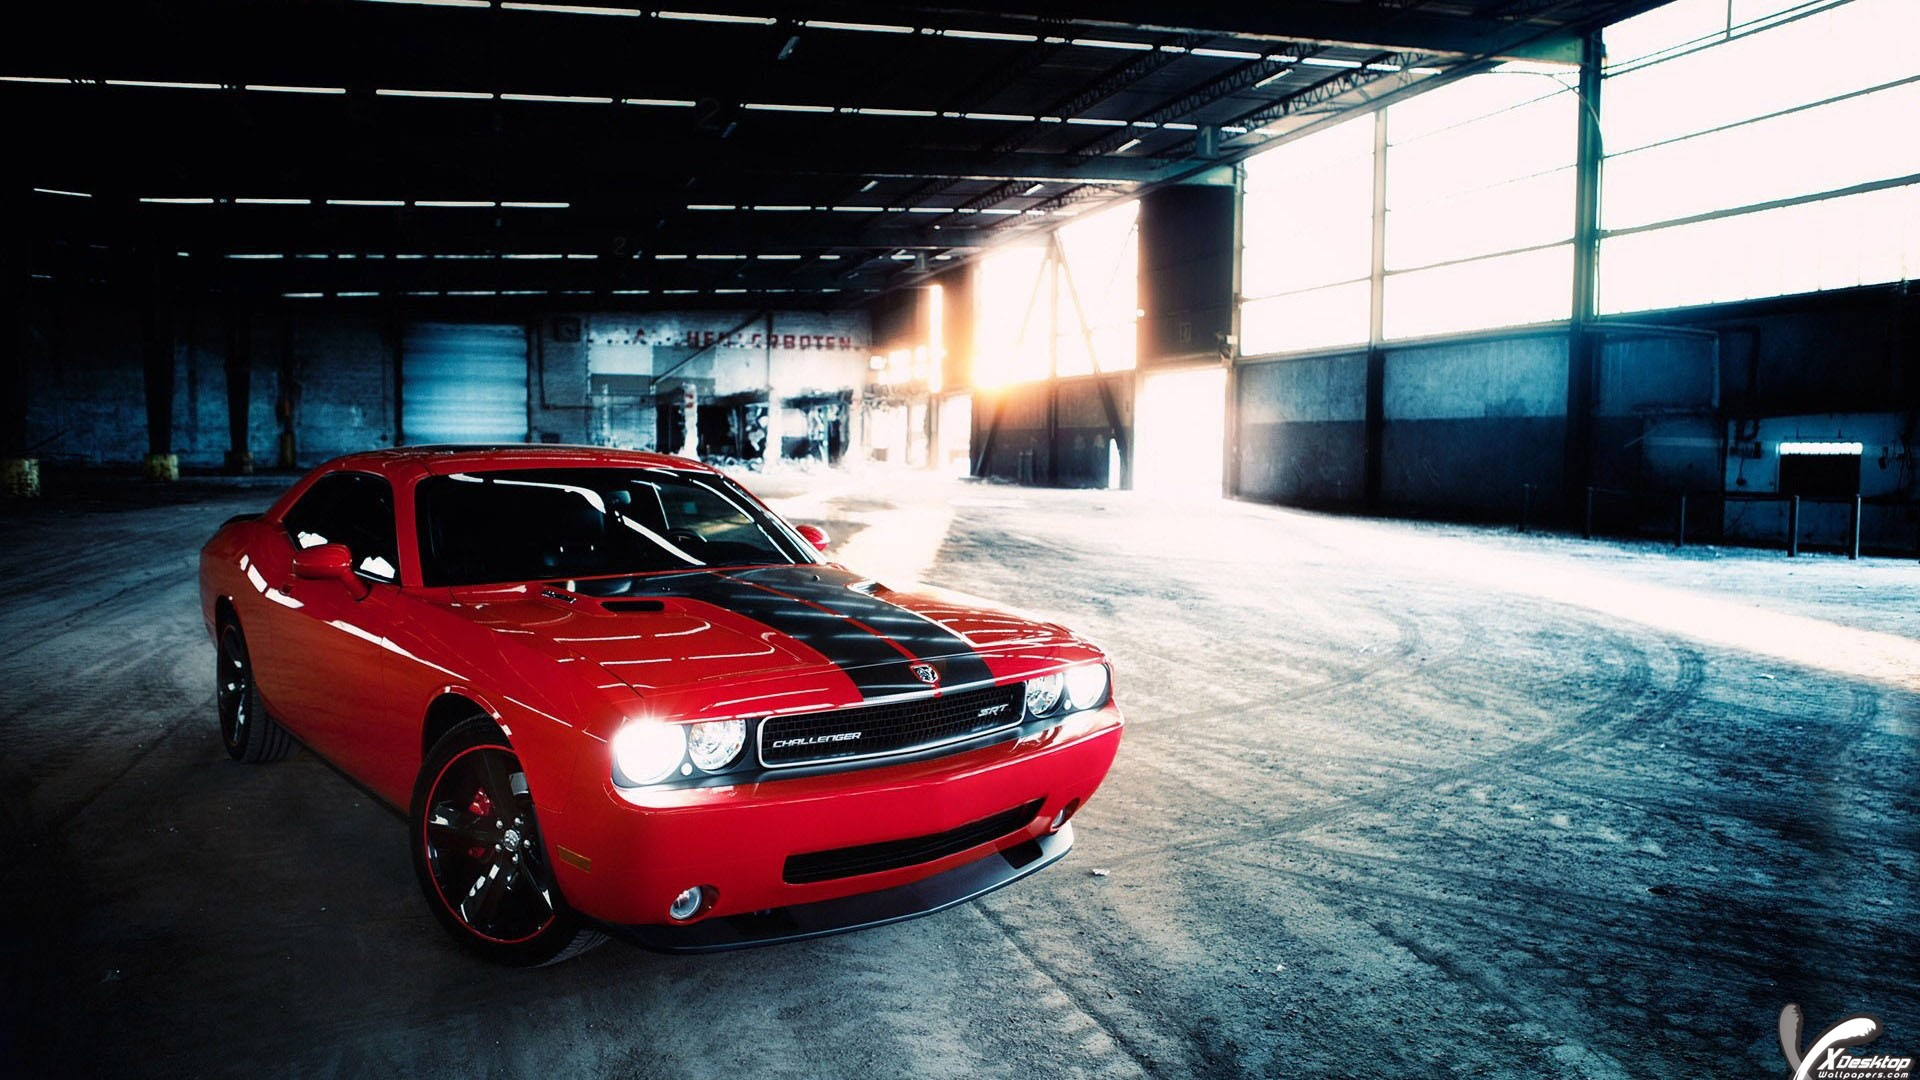 Dodge Challenger SRT Looking Awesome In Red